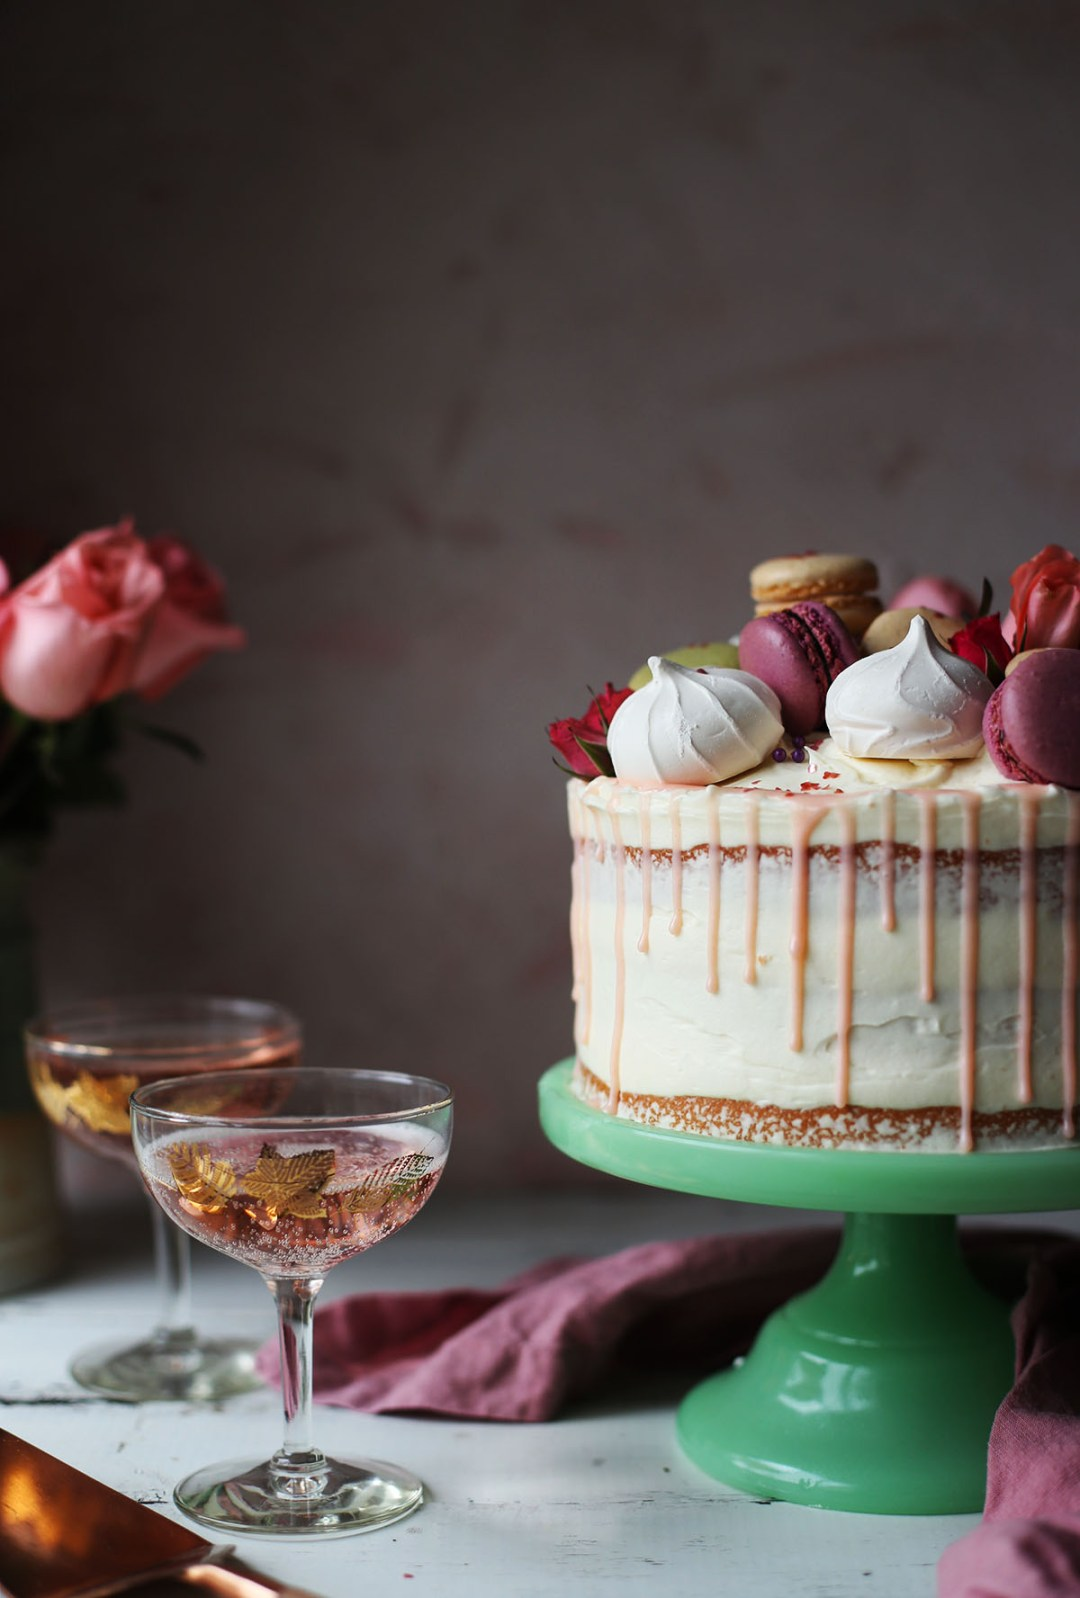 Pink Champagne Cake with White Chocolate Frosting